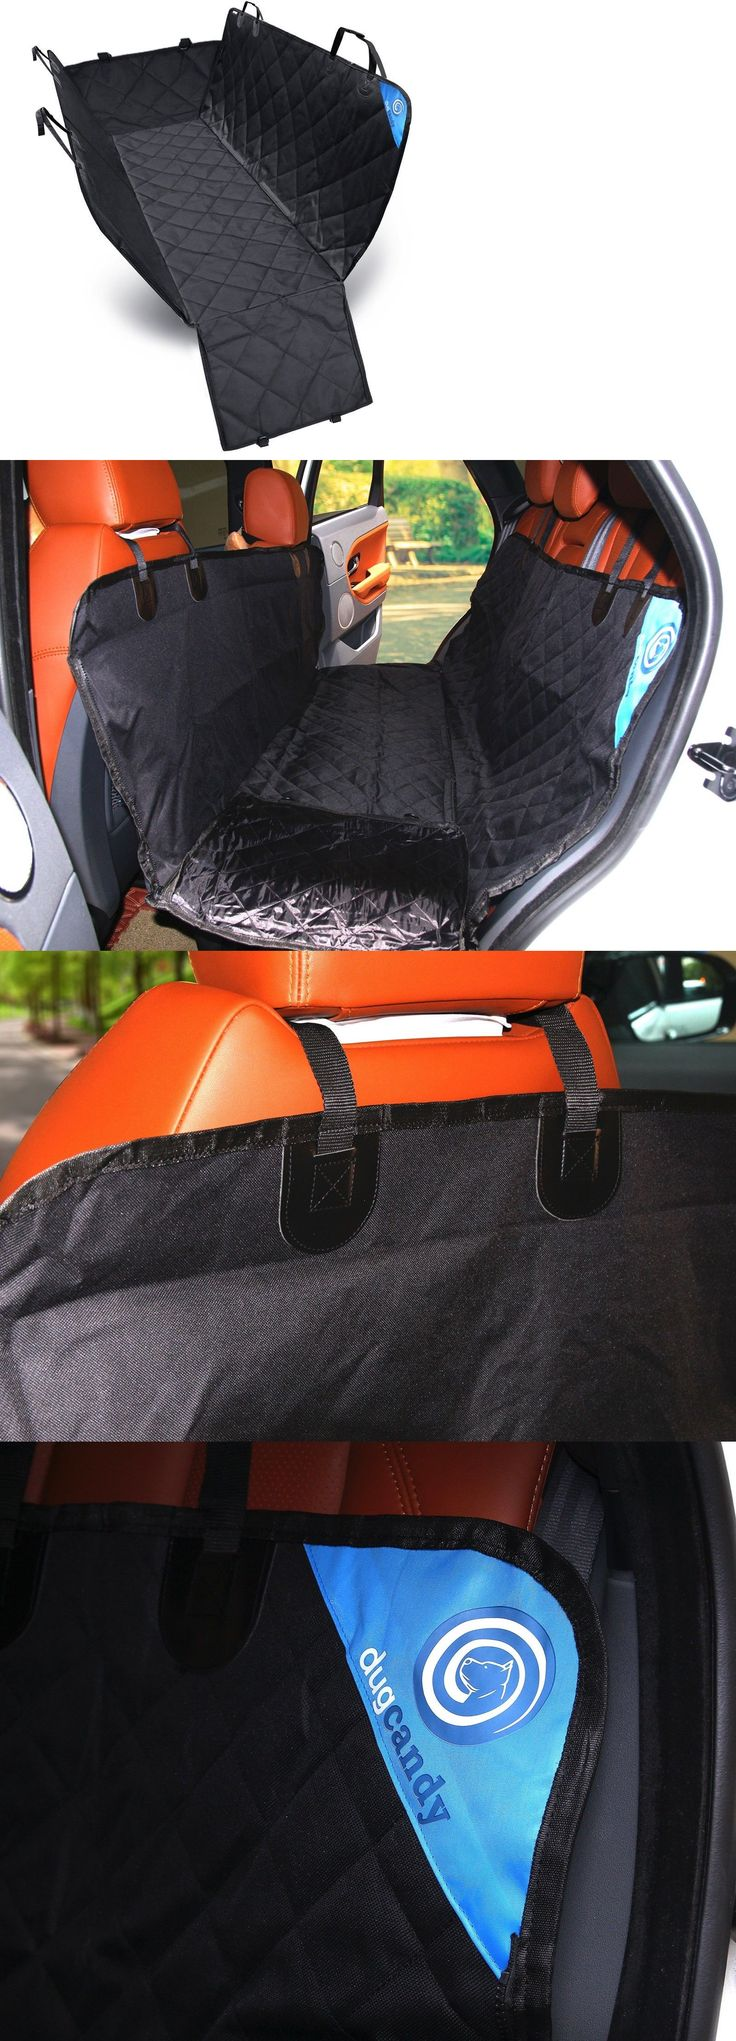 Car Seat Covers 117426: Proof Pet Dog Cat Car Seat Universal Fit Car Van Truck Suv Black Hammock Cover -> BUY IT NOW ONLY: $39.95 on eBay!